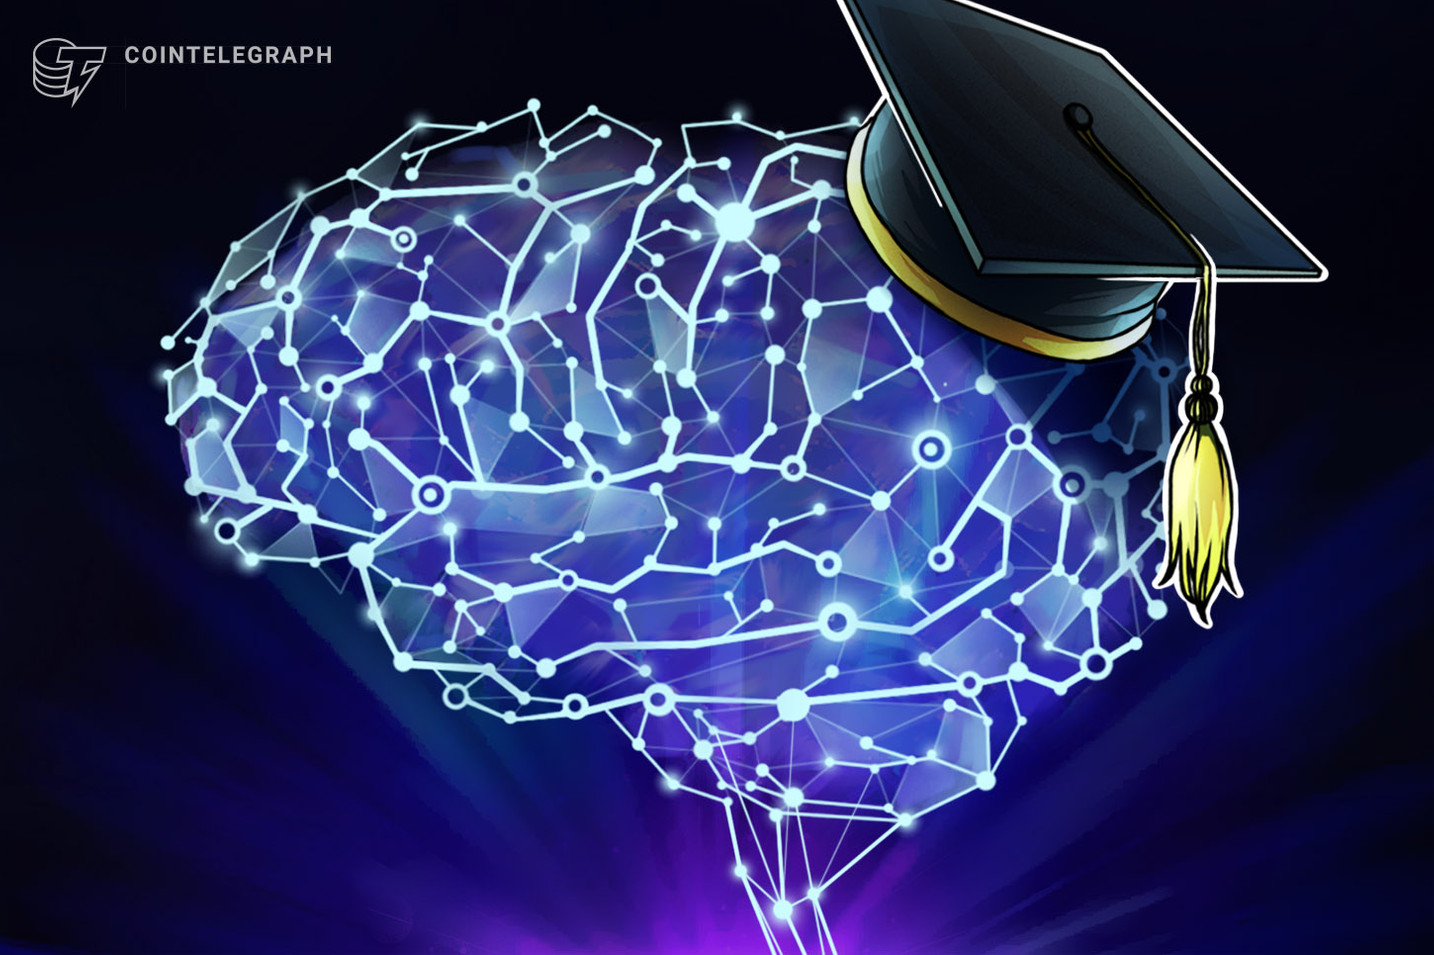 Arizona State University to Use SalesForce Blockchain for Academic Records